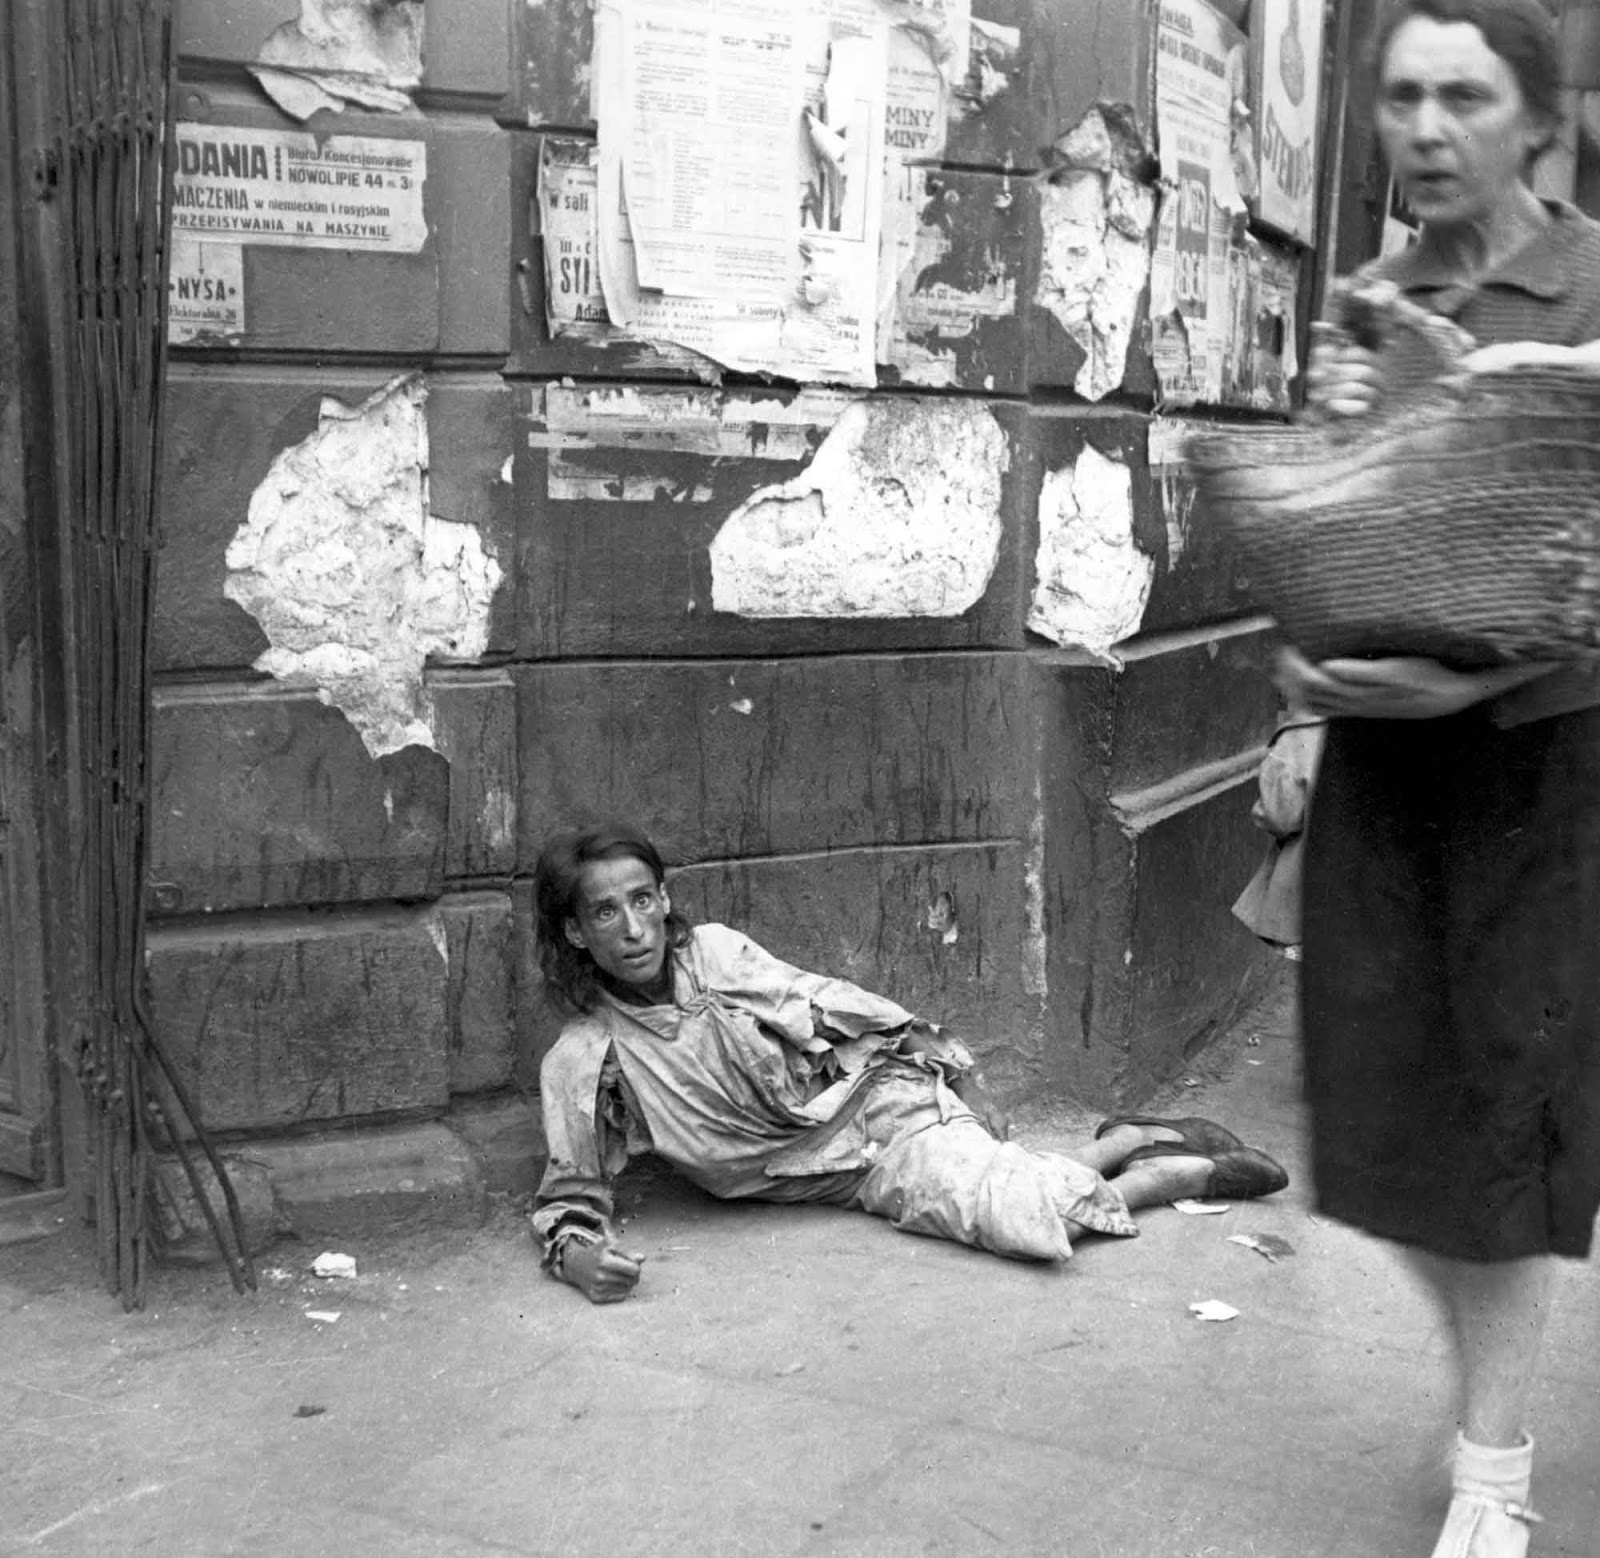 A woman lying on the pavement in the Warsaw ghetto, starving to death, 1941. (Photo taken by Heinz Joest).